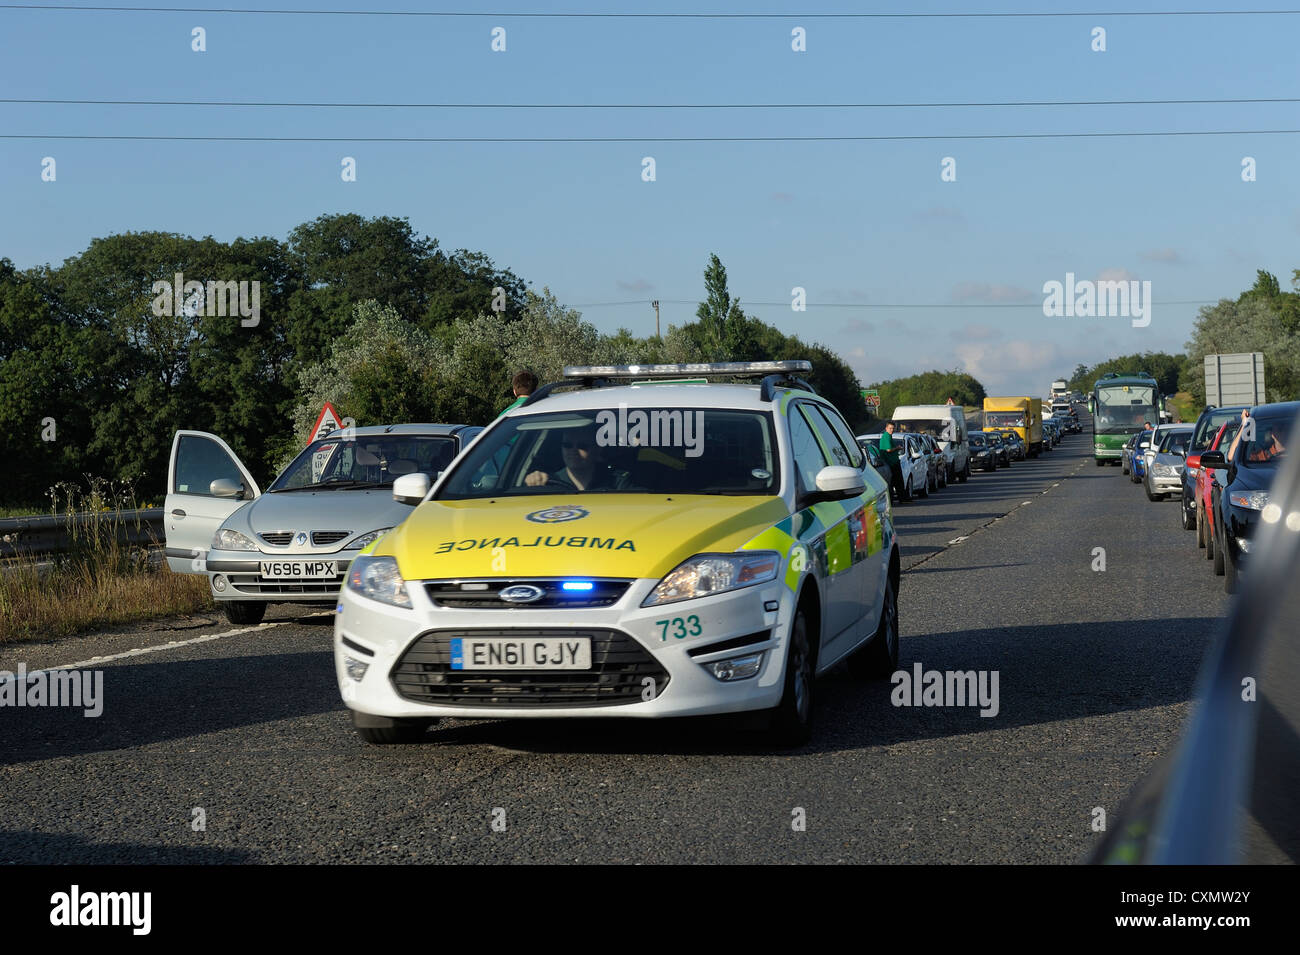 paramedic ambulance response vehicle rushing to a road traffic accident england uk - Stock Image